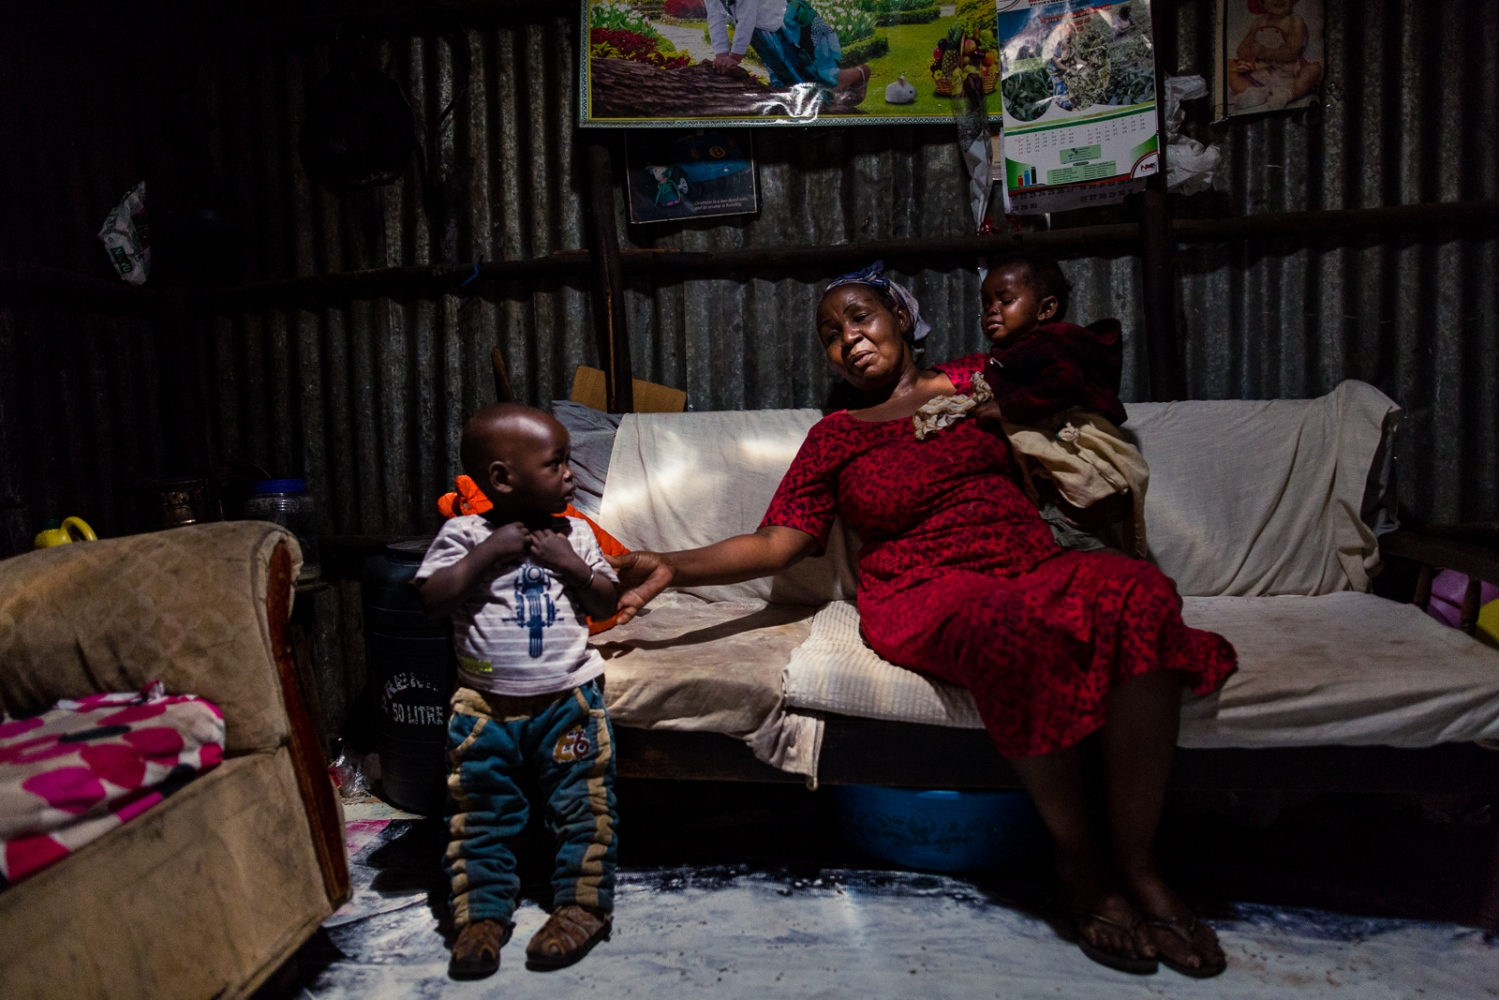 """Nairobi, KENYA, February 20, 2017: Elizabeth Kamau, 60, inside her hut in the Korogocho township with one of her ten grandchildren and the child of her adopted daughter. """"I like being a good role model to children by showing them that a woman can be strong and empowered"""", she says. Elizabeth has been training with the 'Shosho Jikinge' (Engl.: 'Grandmother defend yourself') group since five years and has succesfully applied self-defense techniques to fight off potential sexual attackers."""